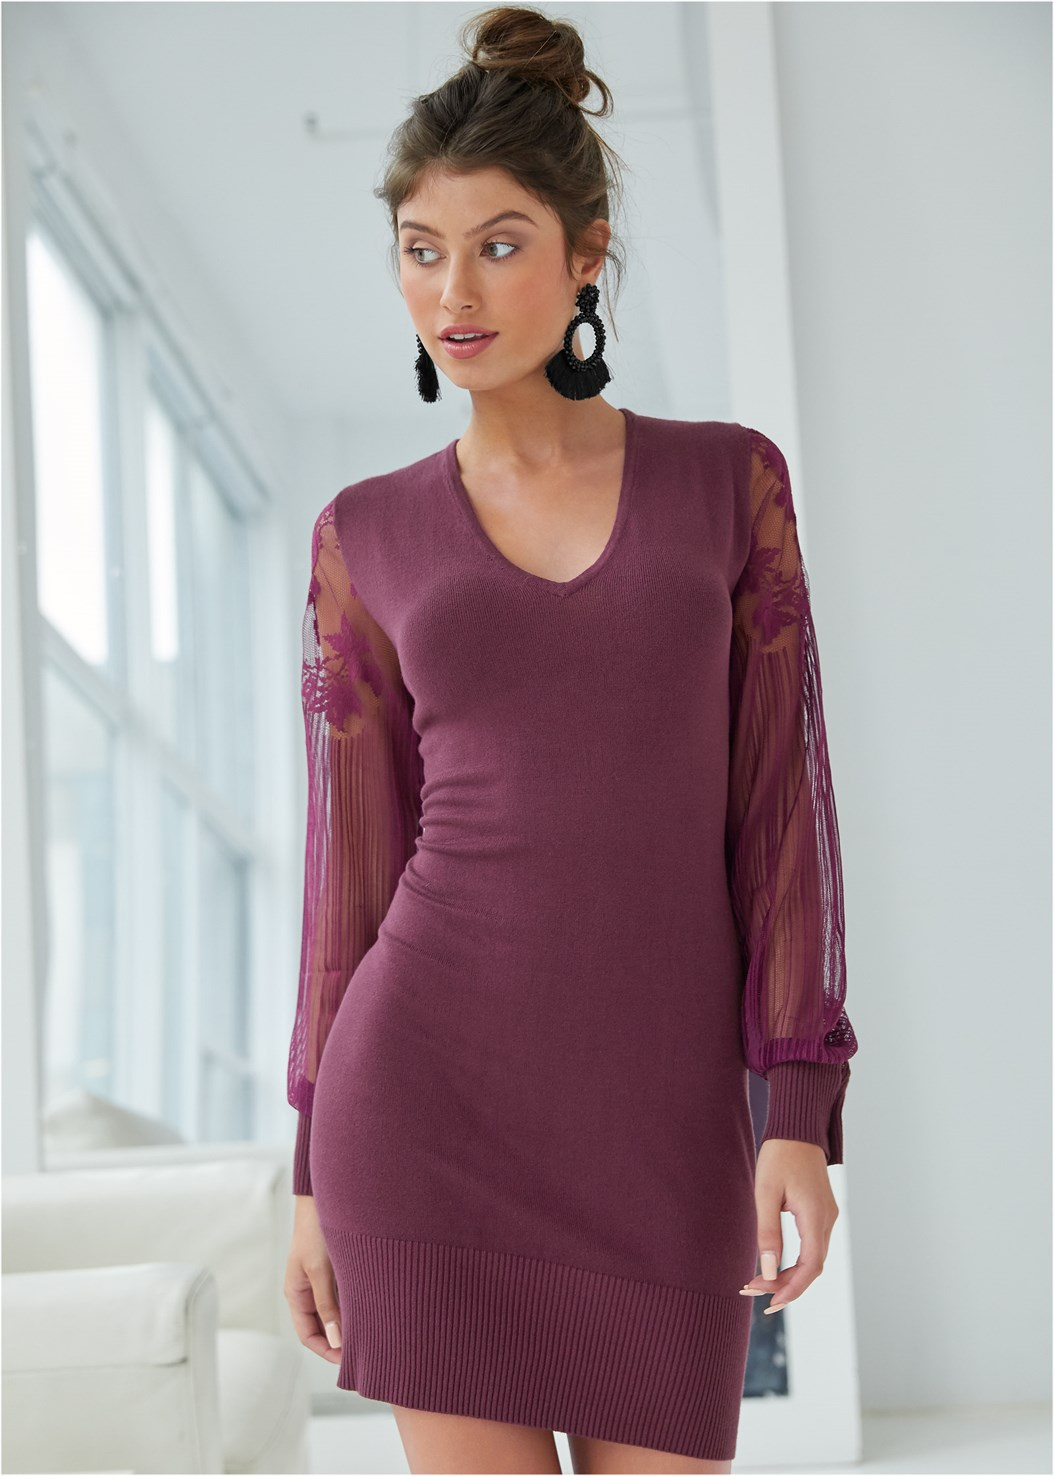 Sleeve Detail Sweater Dress,Kissable Convertible Bra,Beaded Tassel Earrings